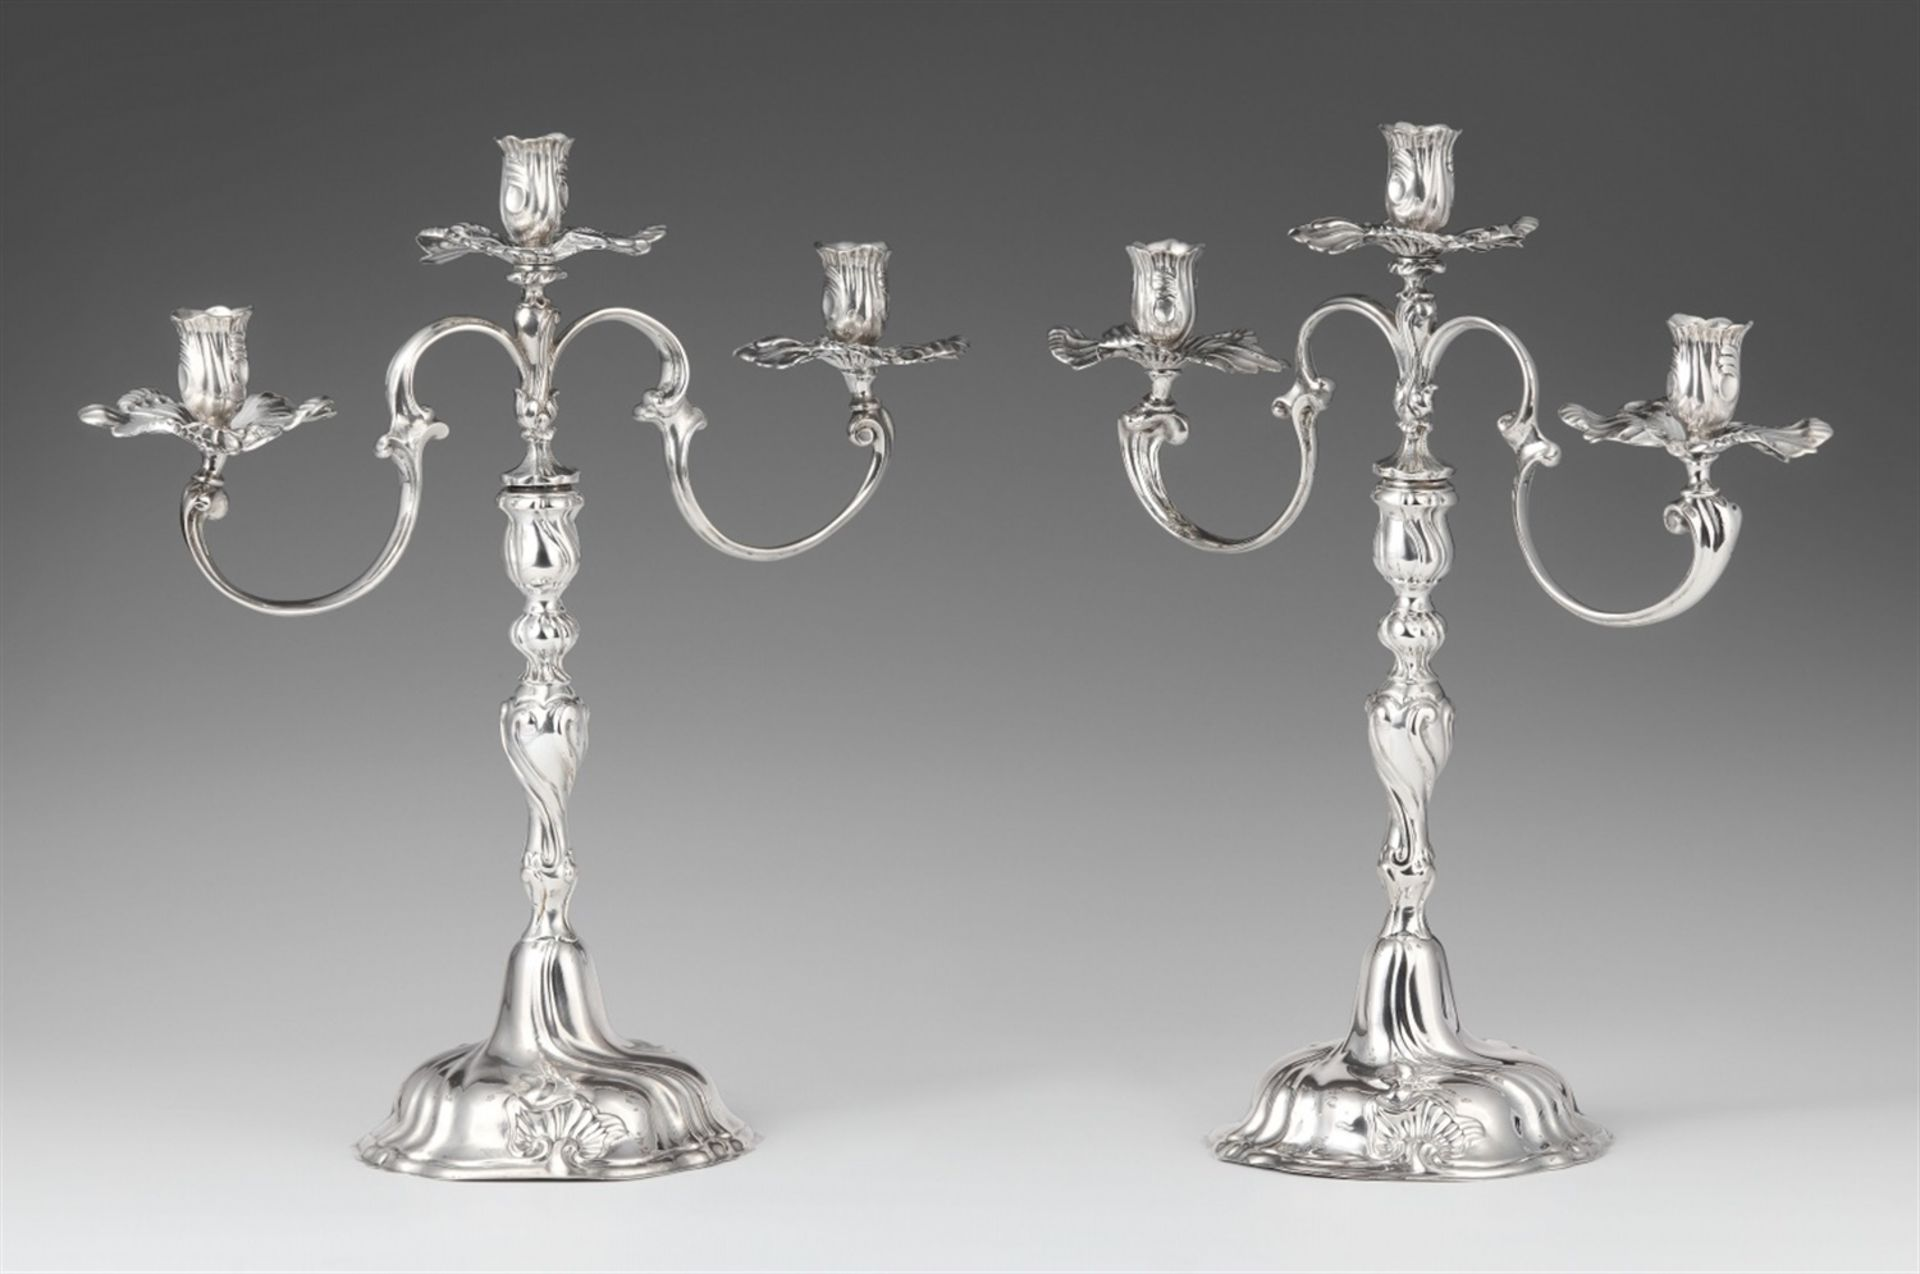 Los 737 - A pair of Braunschweig silver candelabraSilver. Baluster-form shafts with shellwork décor and